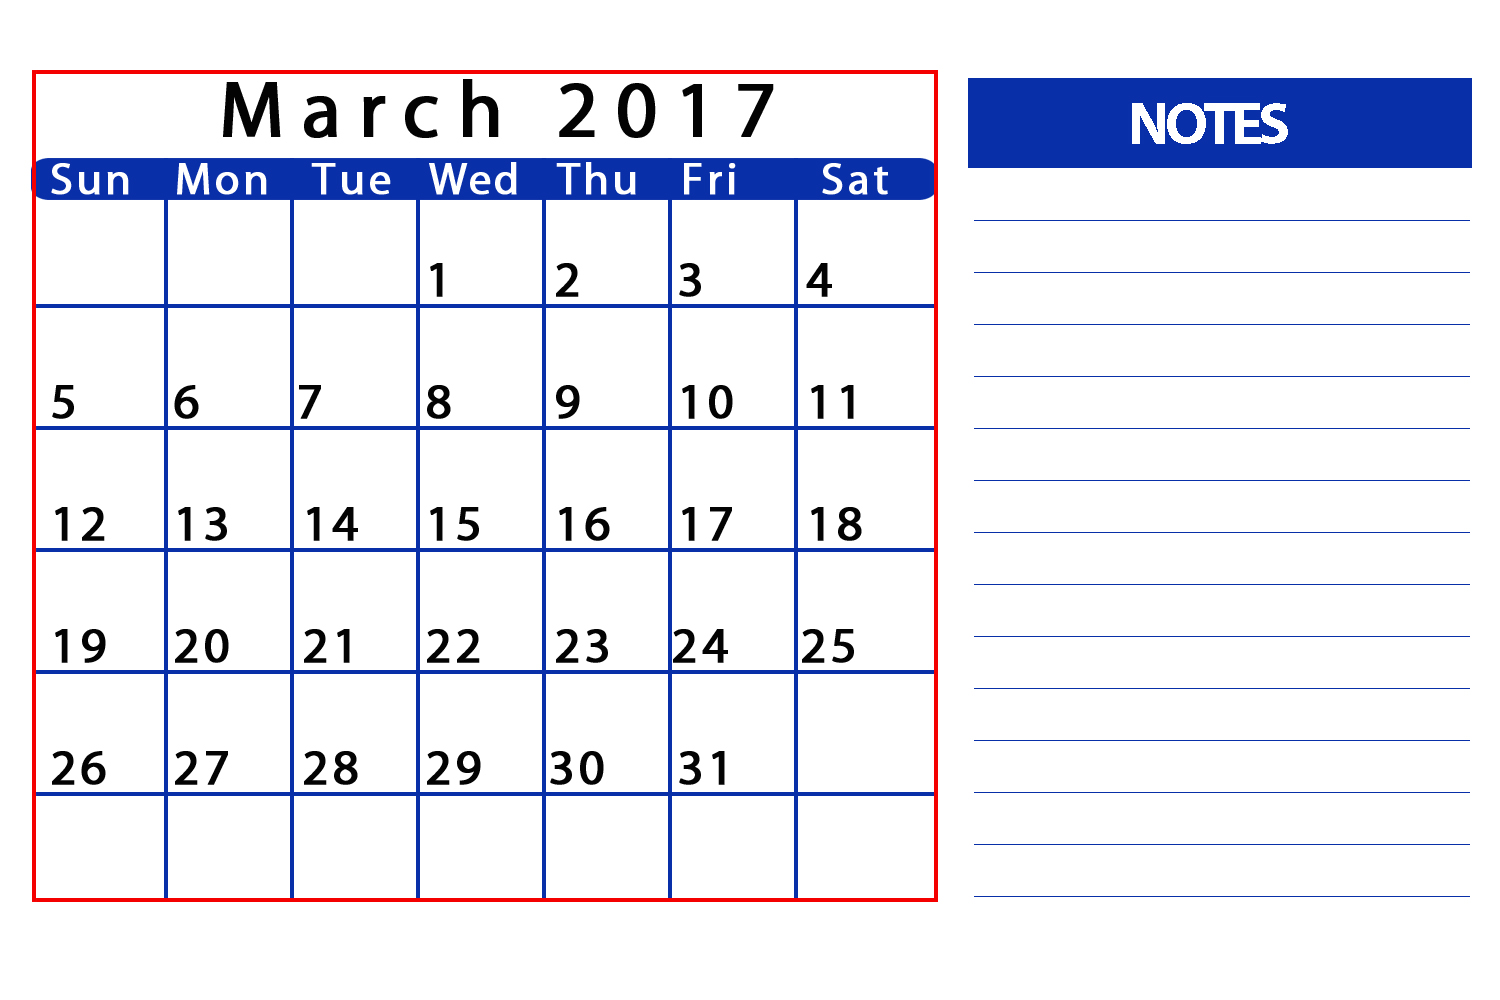 2017 March Calendar with Notes